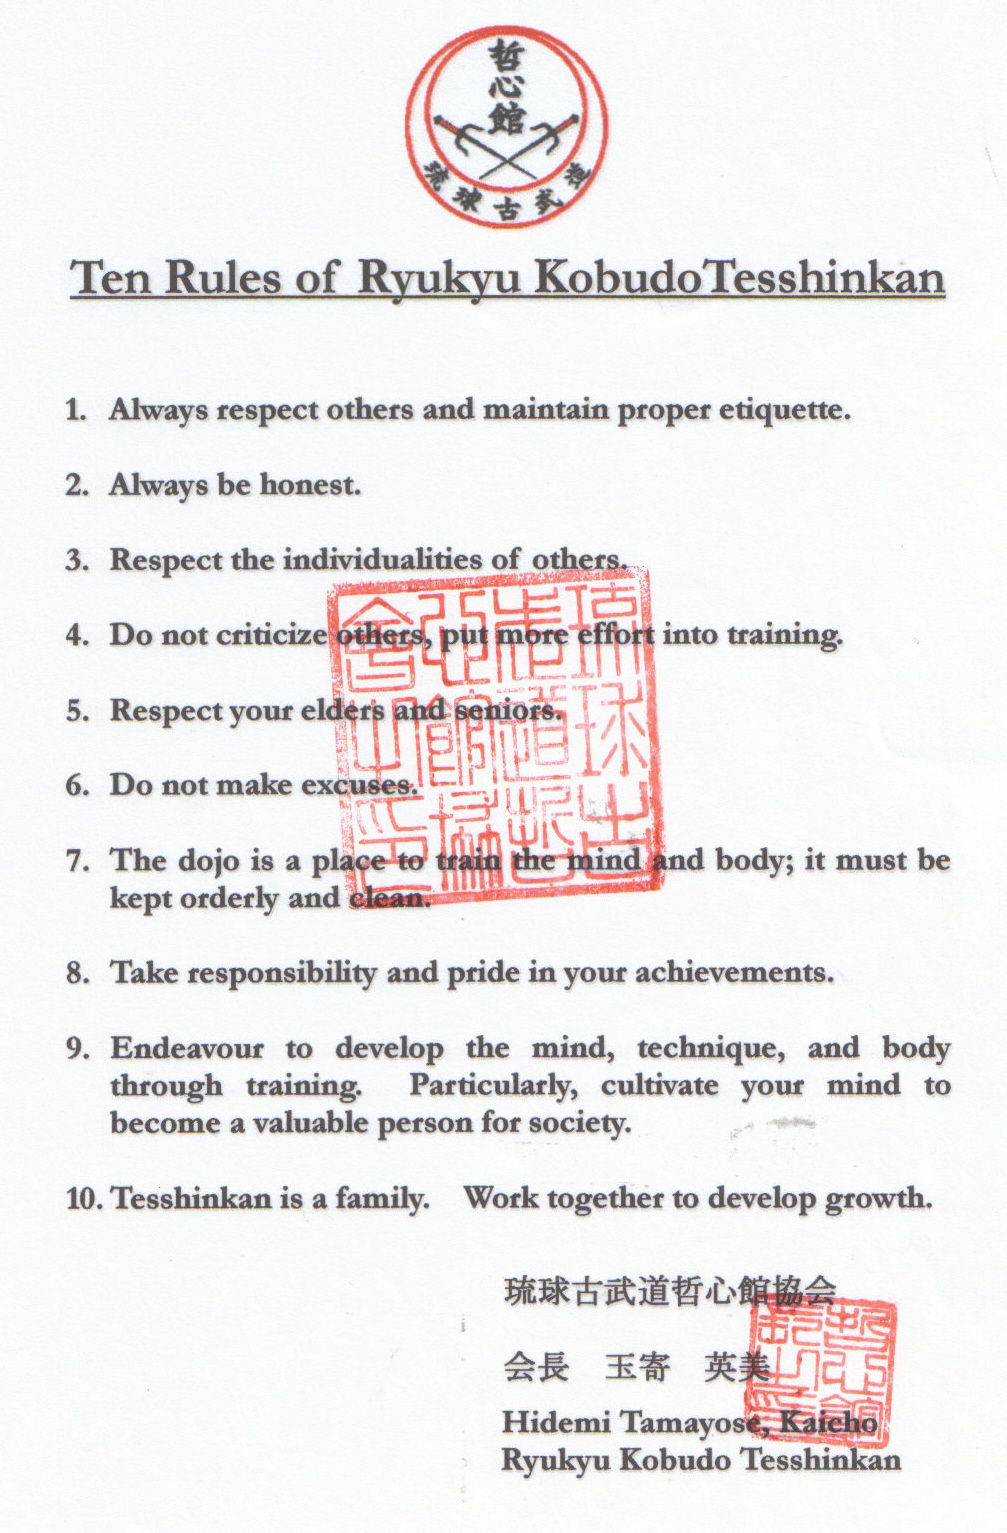 10 Rules of Tesshinkan